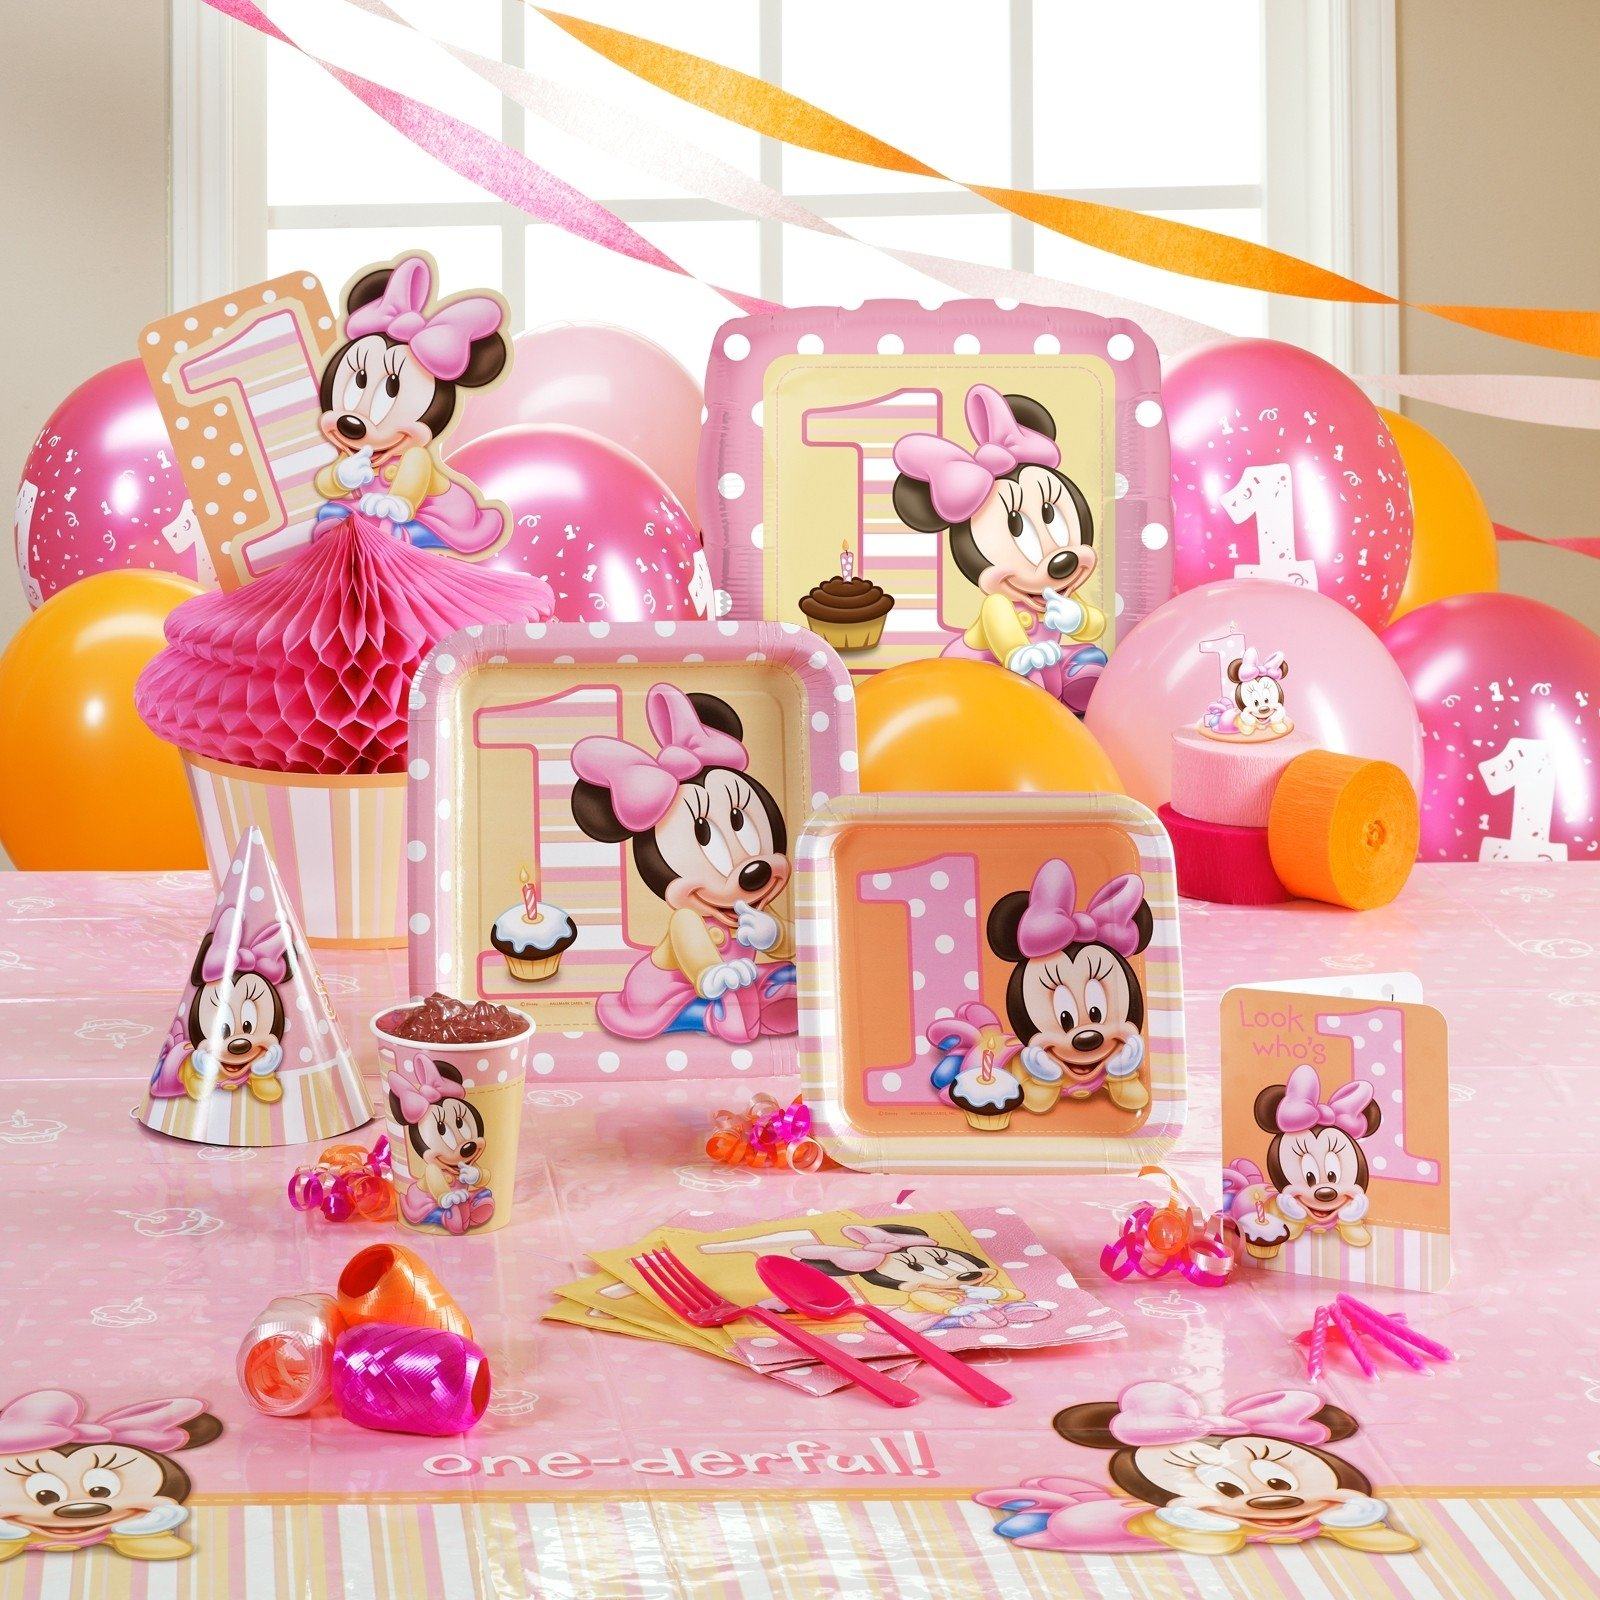 10 Fashionable Baby Minnie Mouse 1St Birthday Party Ideas minnie mouse 1st birthday party ph d serts cakes 2020